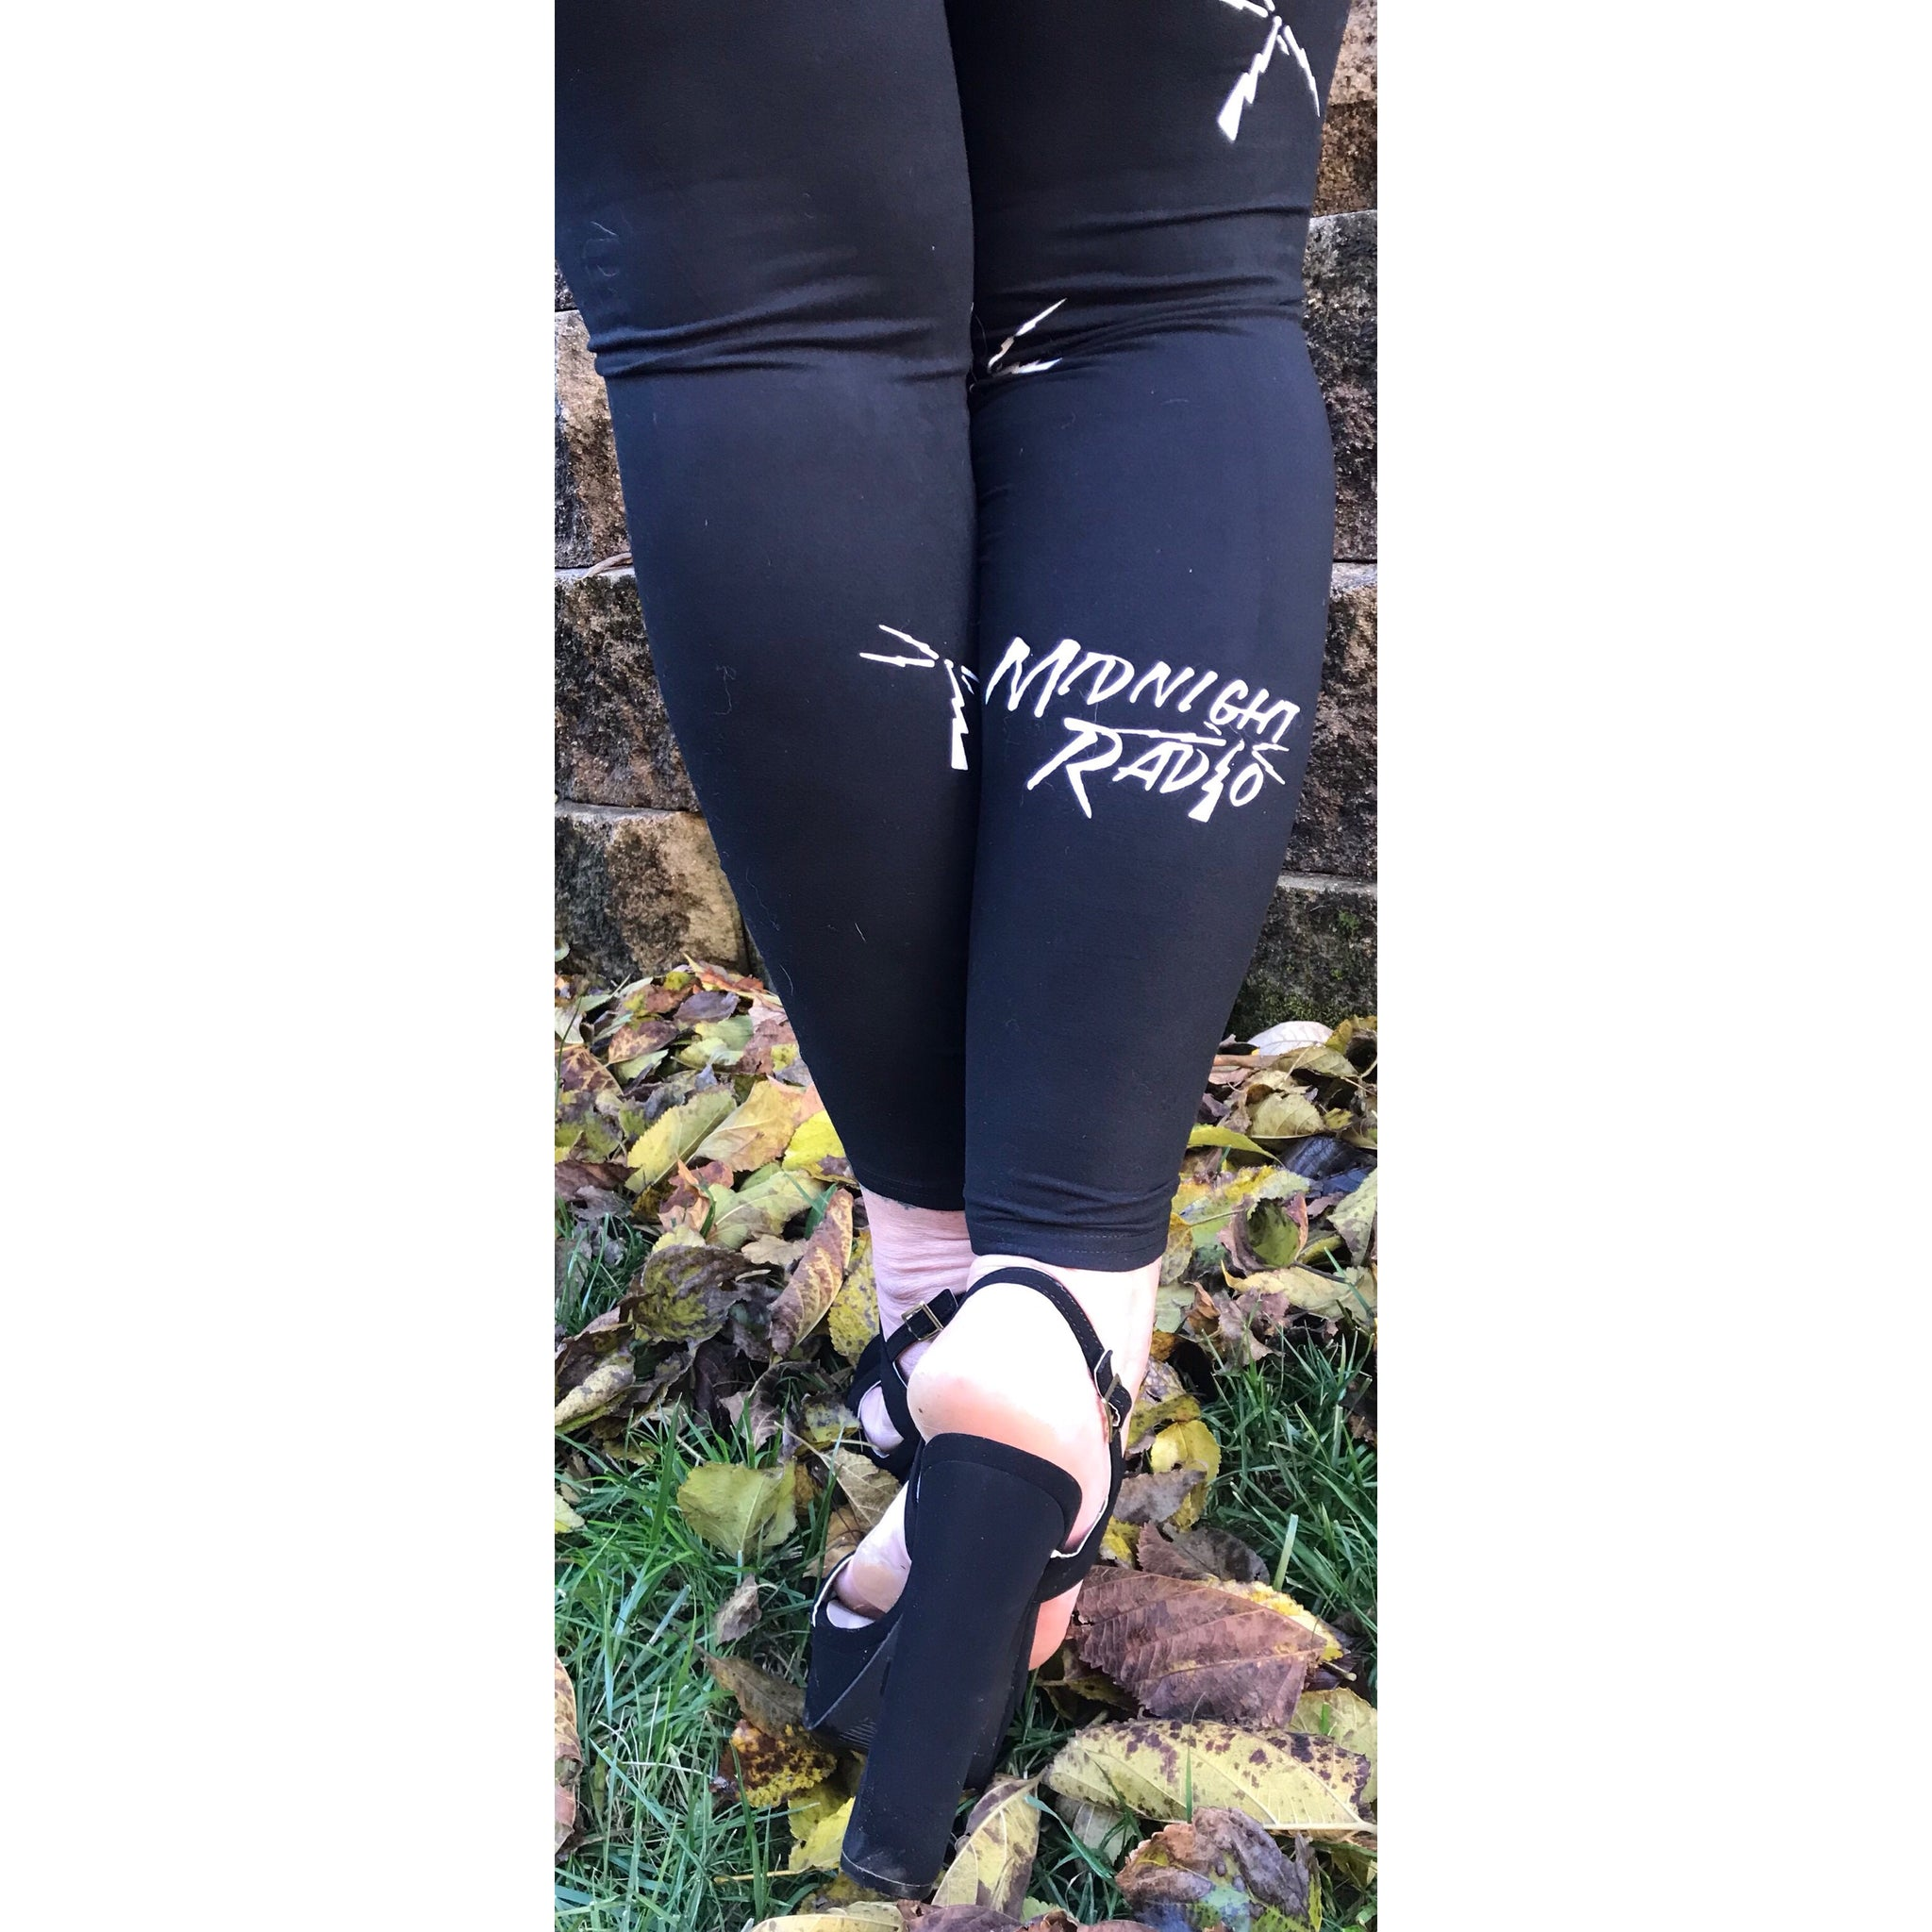 MIDNIGHT RADIO LEGGINGS